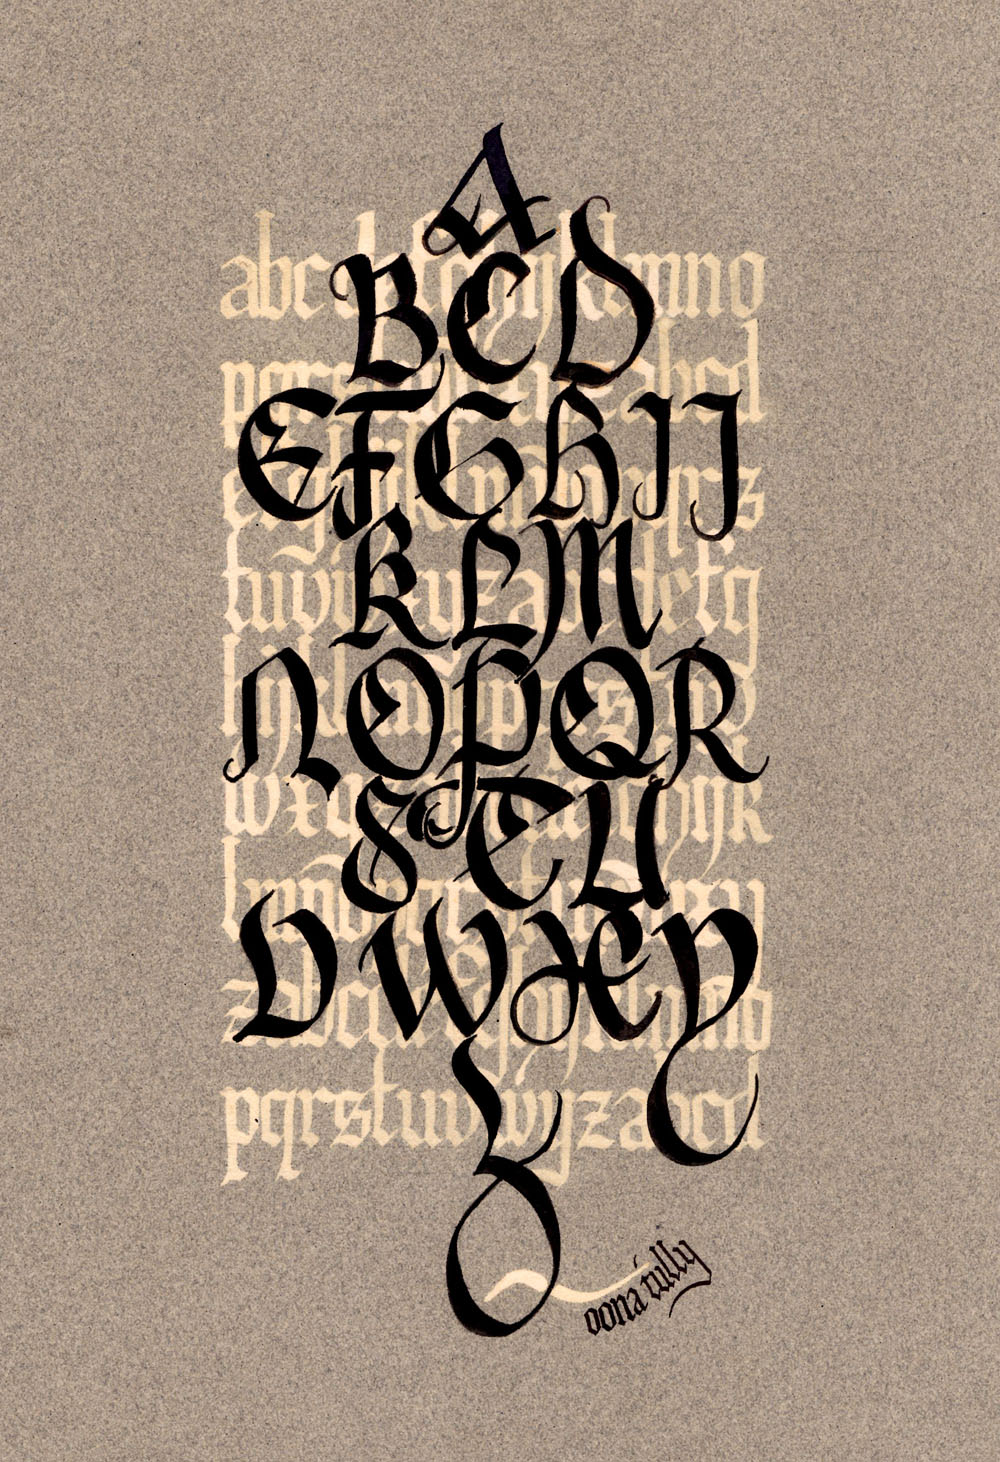 Modern Calligraphy Alphabets Tully calligraphy's